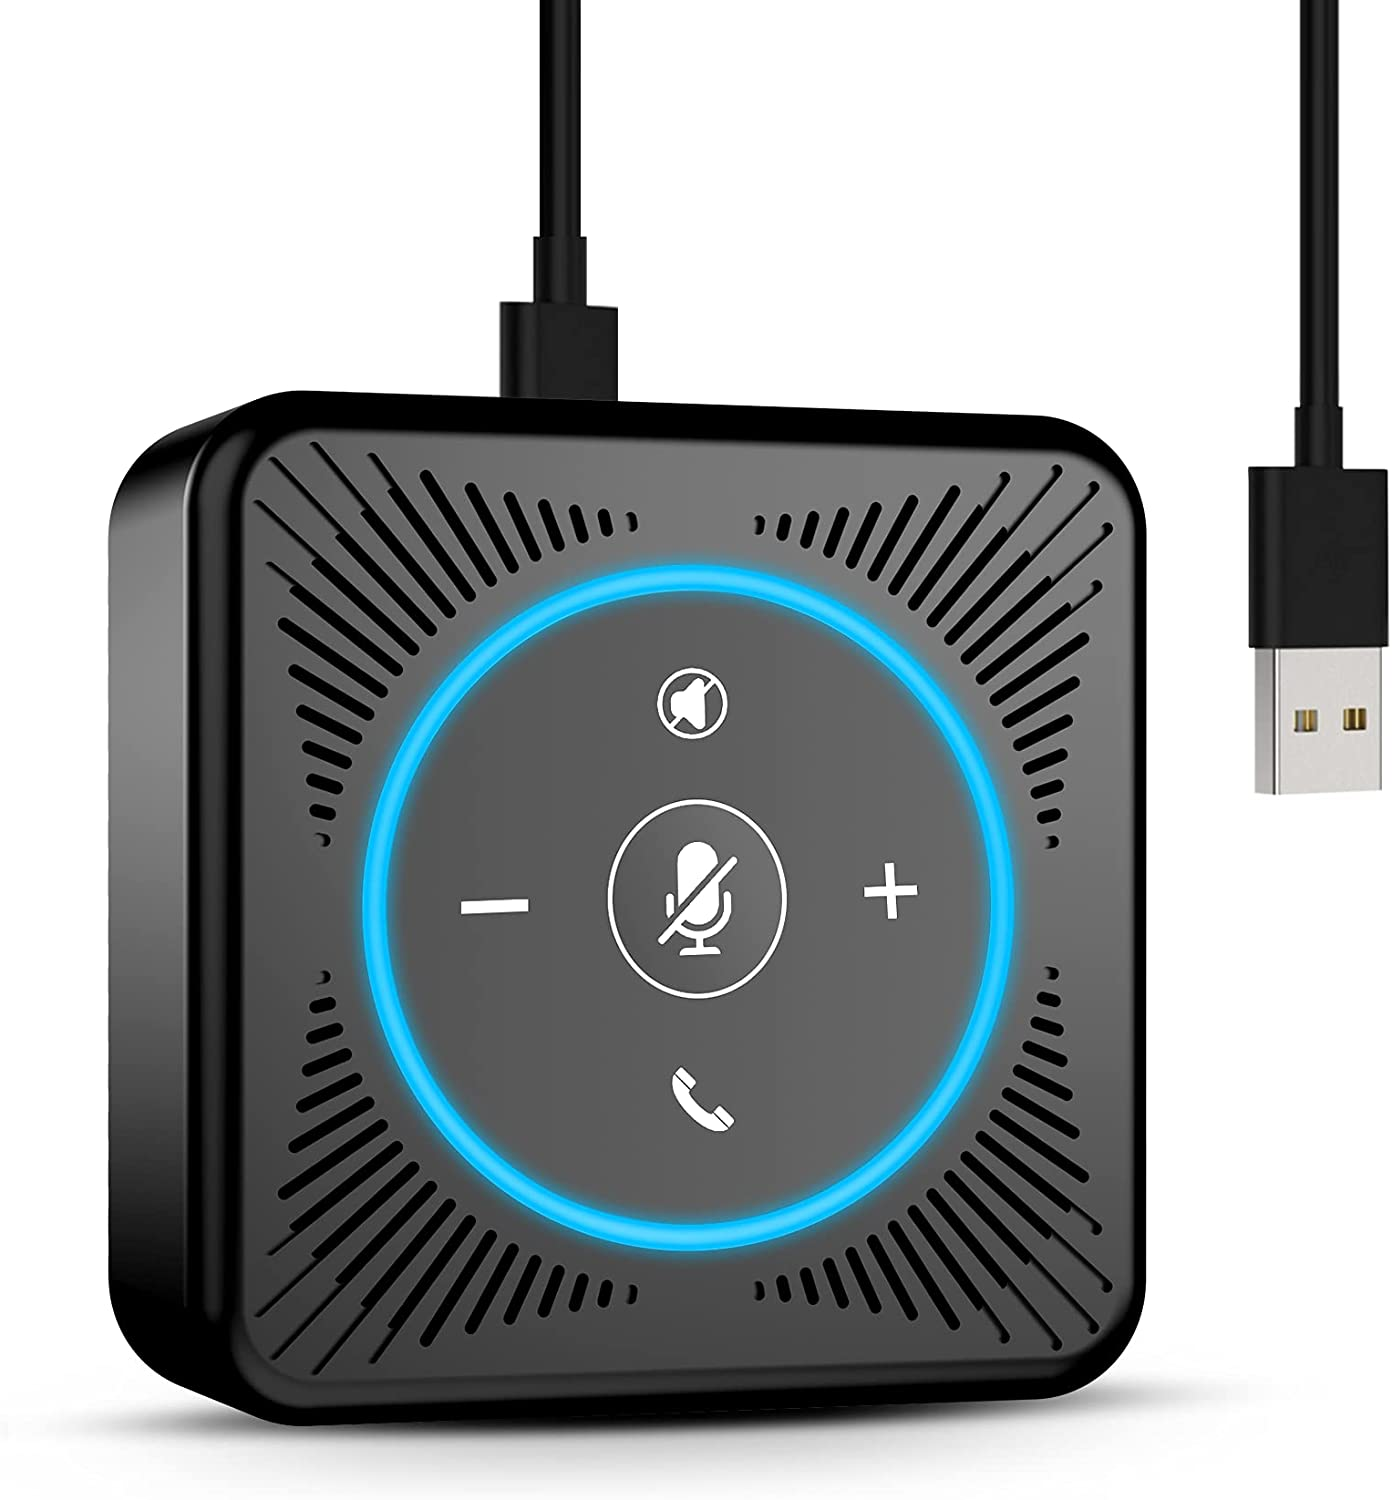 USB Speakerphone - eMeet M0 Conference Speaker for 4 People Business Conference 360° Voice Pickup 4 AI Microphones USB Skype Speakerphone Conference Call Speaker Plug and Play : Office Products